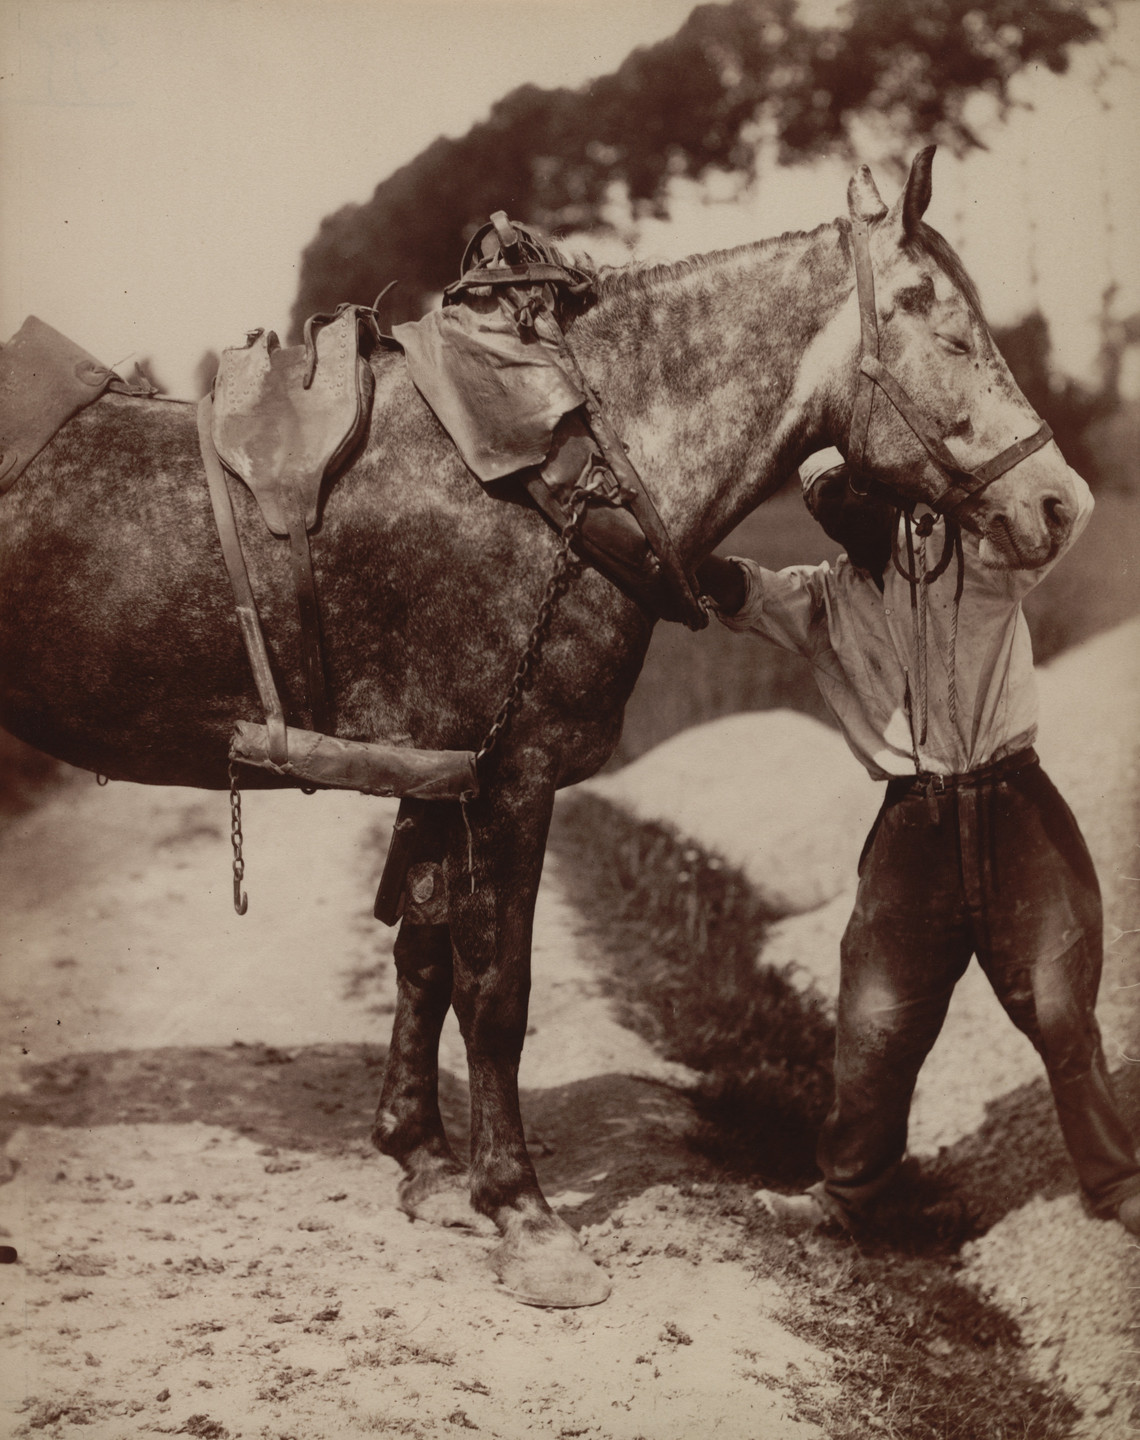 Eugène Atget. Untitled [Harness on Horse]. Before 1900?